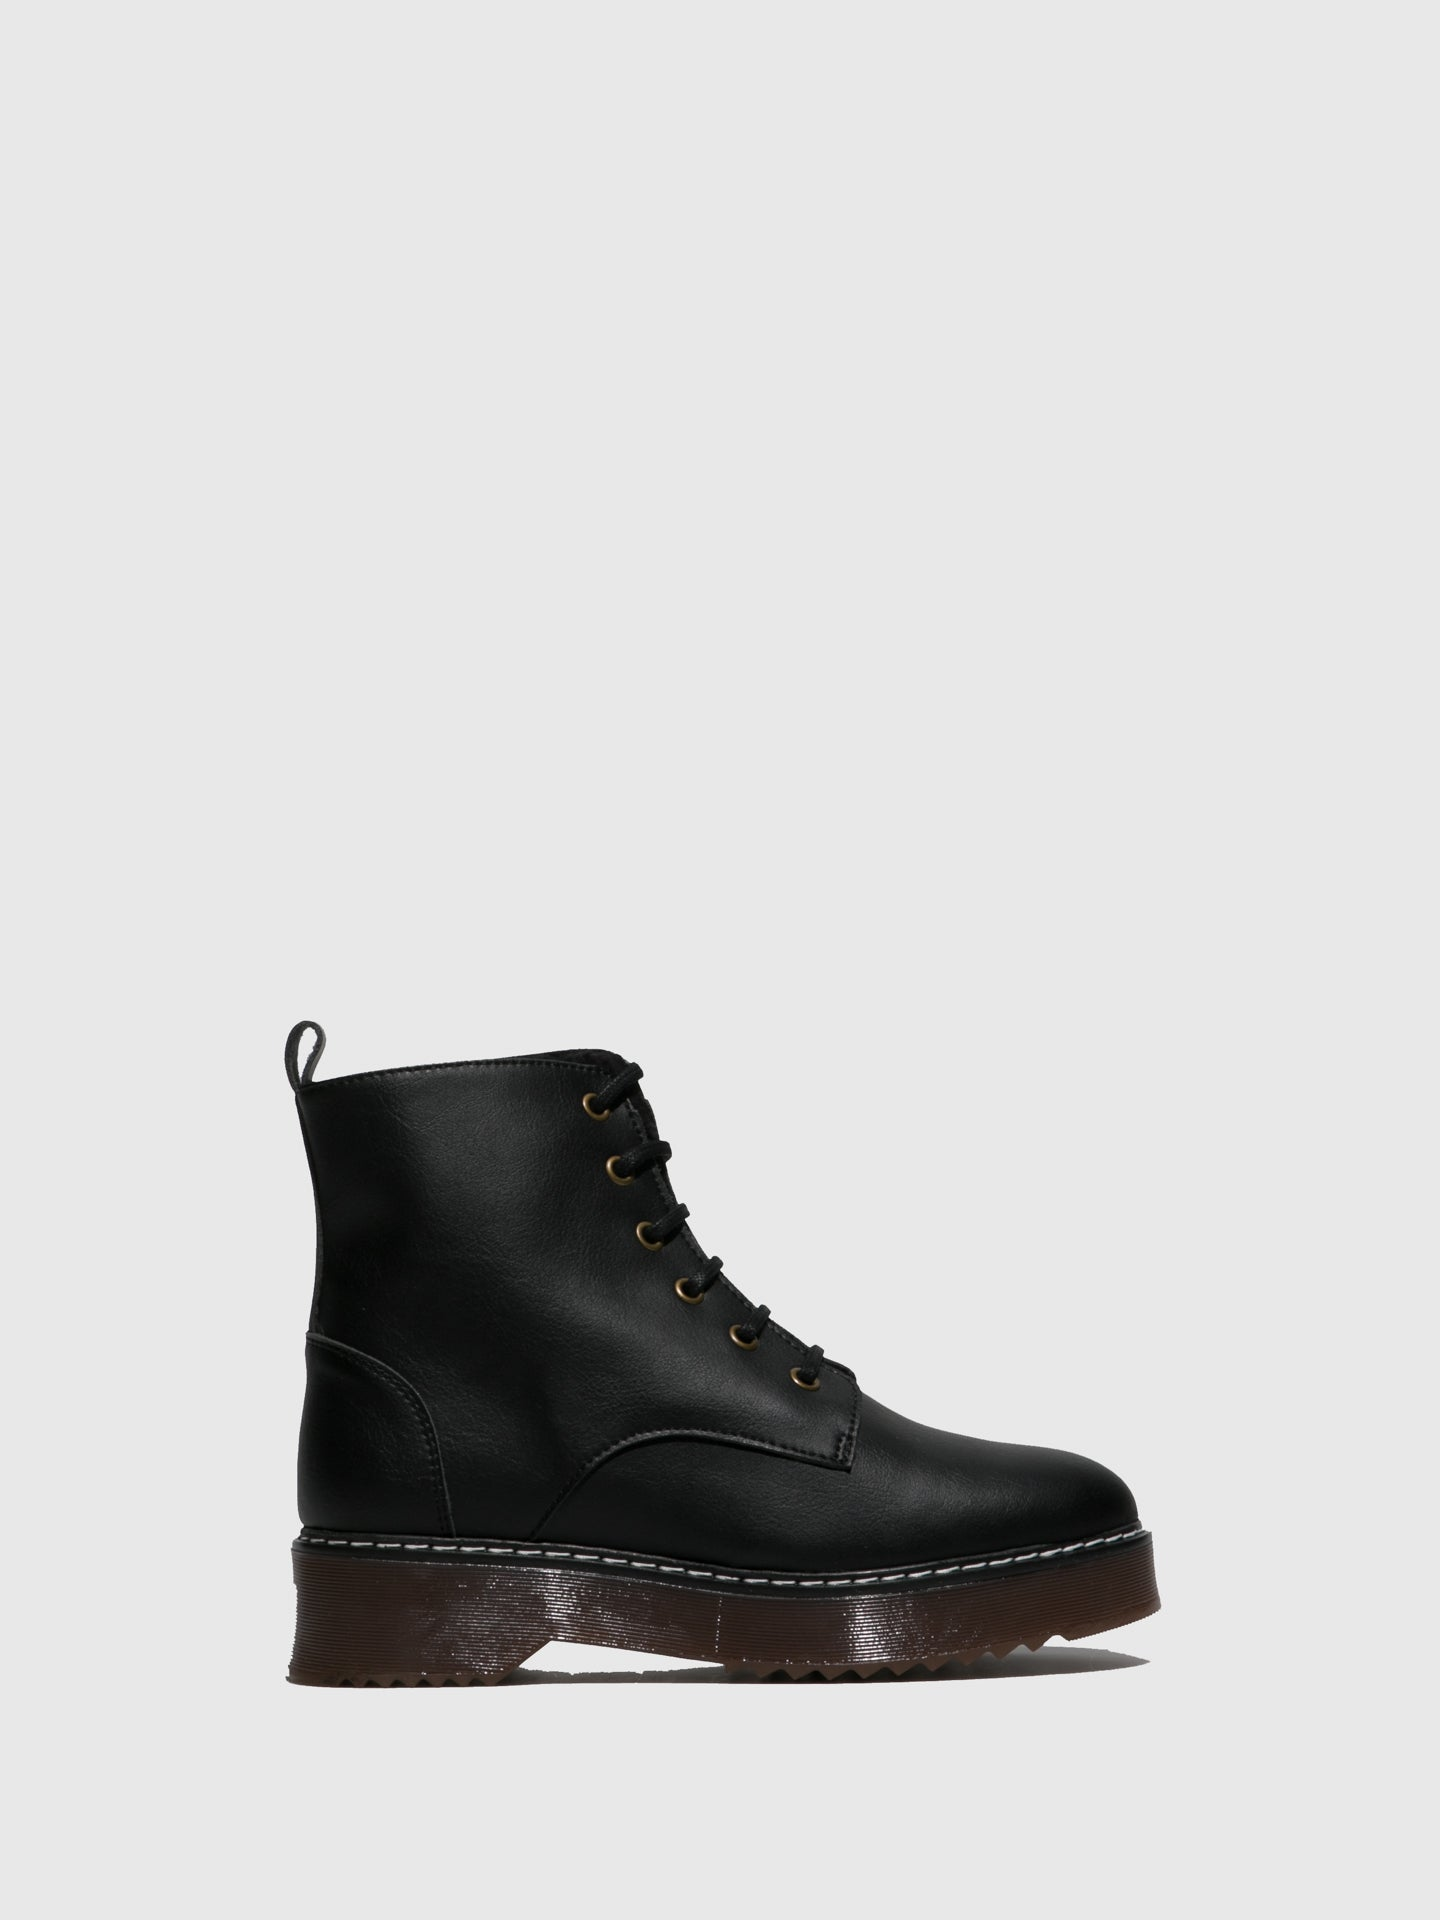 NAE Vegan Shoes Black Lace-up Boots